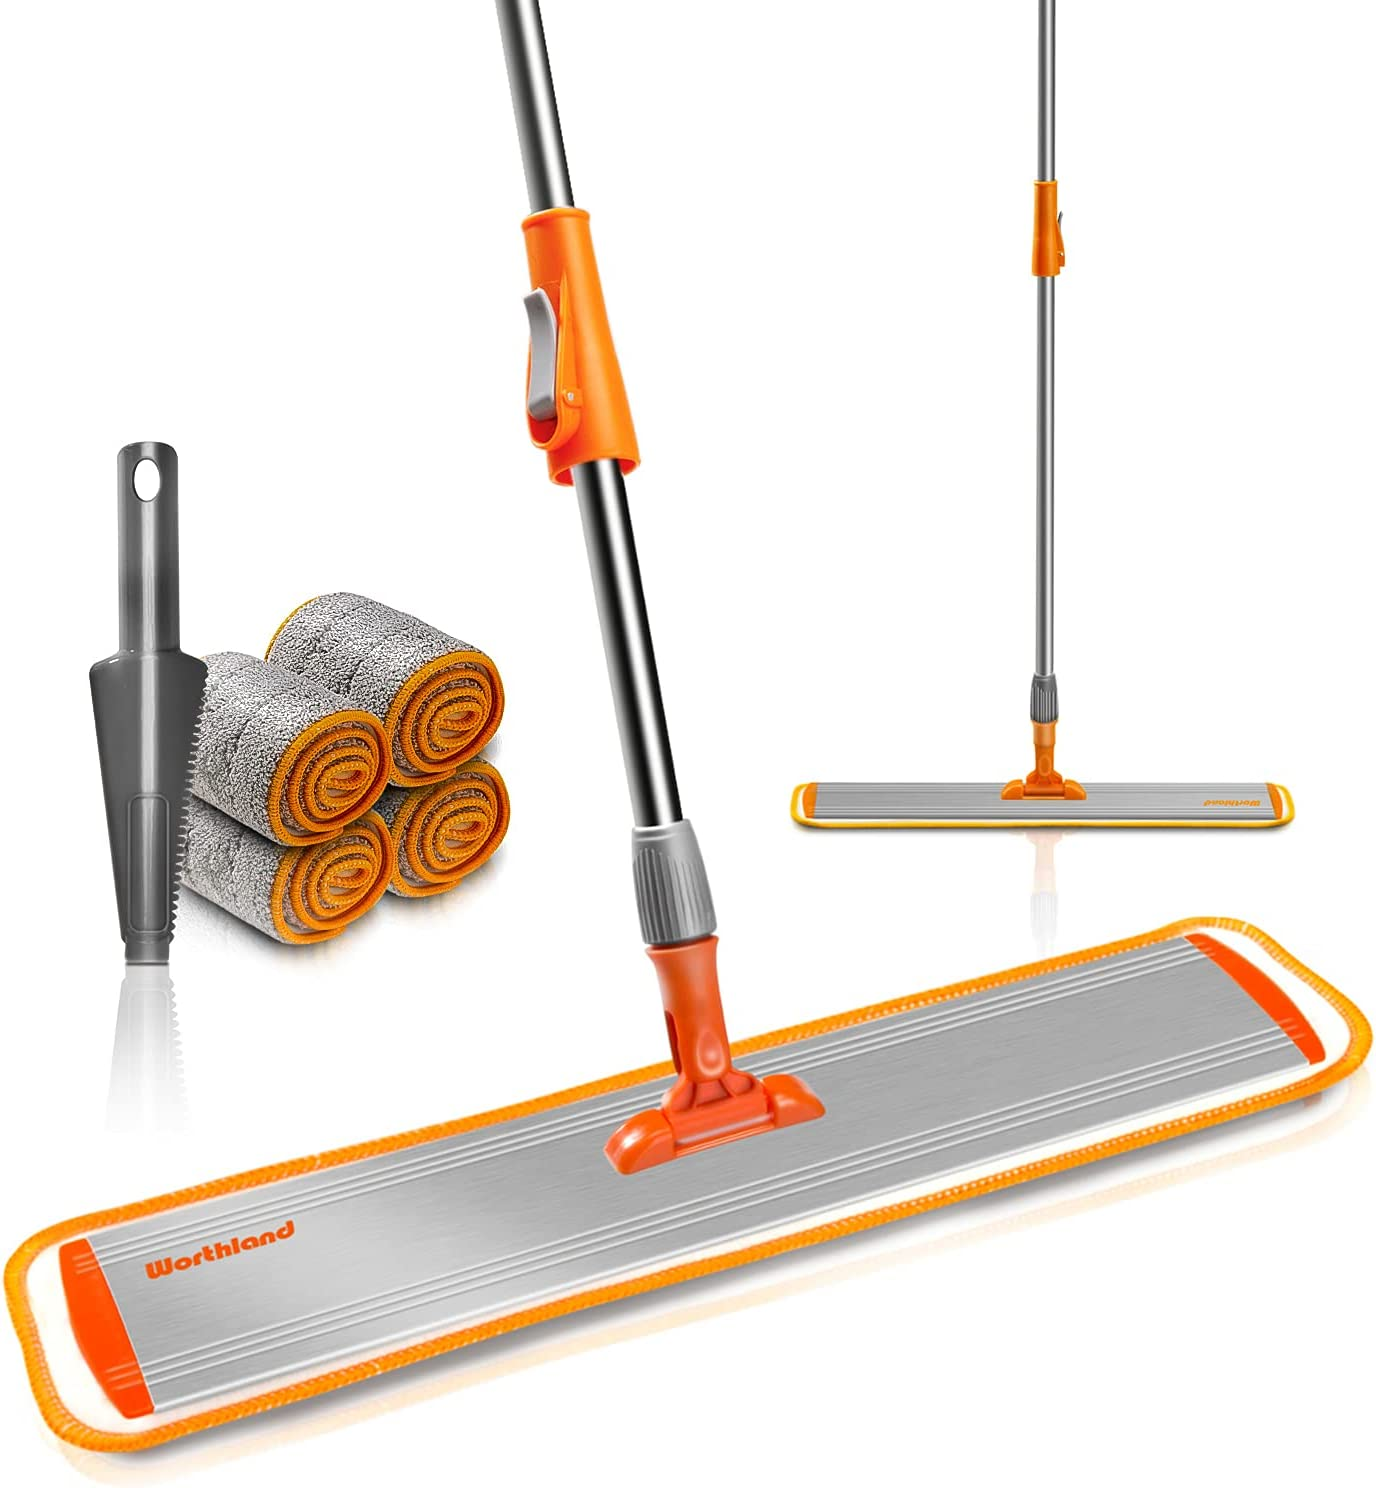 Worthland 24inch Microfiber Flat Mop Cleaning Free Shipping Cheap Bargain Limited time sale Gift Adjusta Floor for